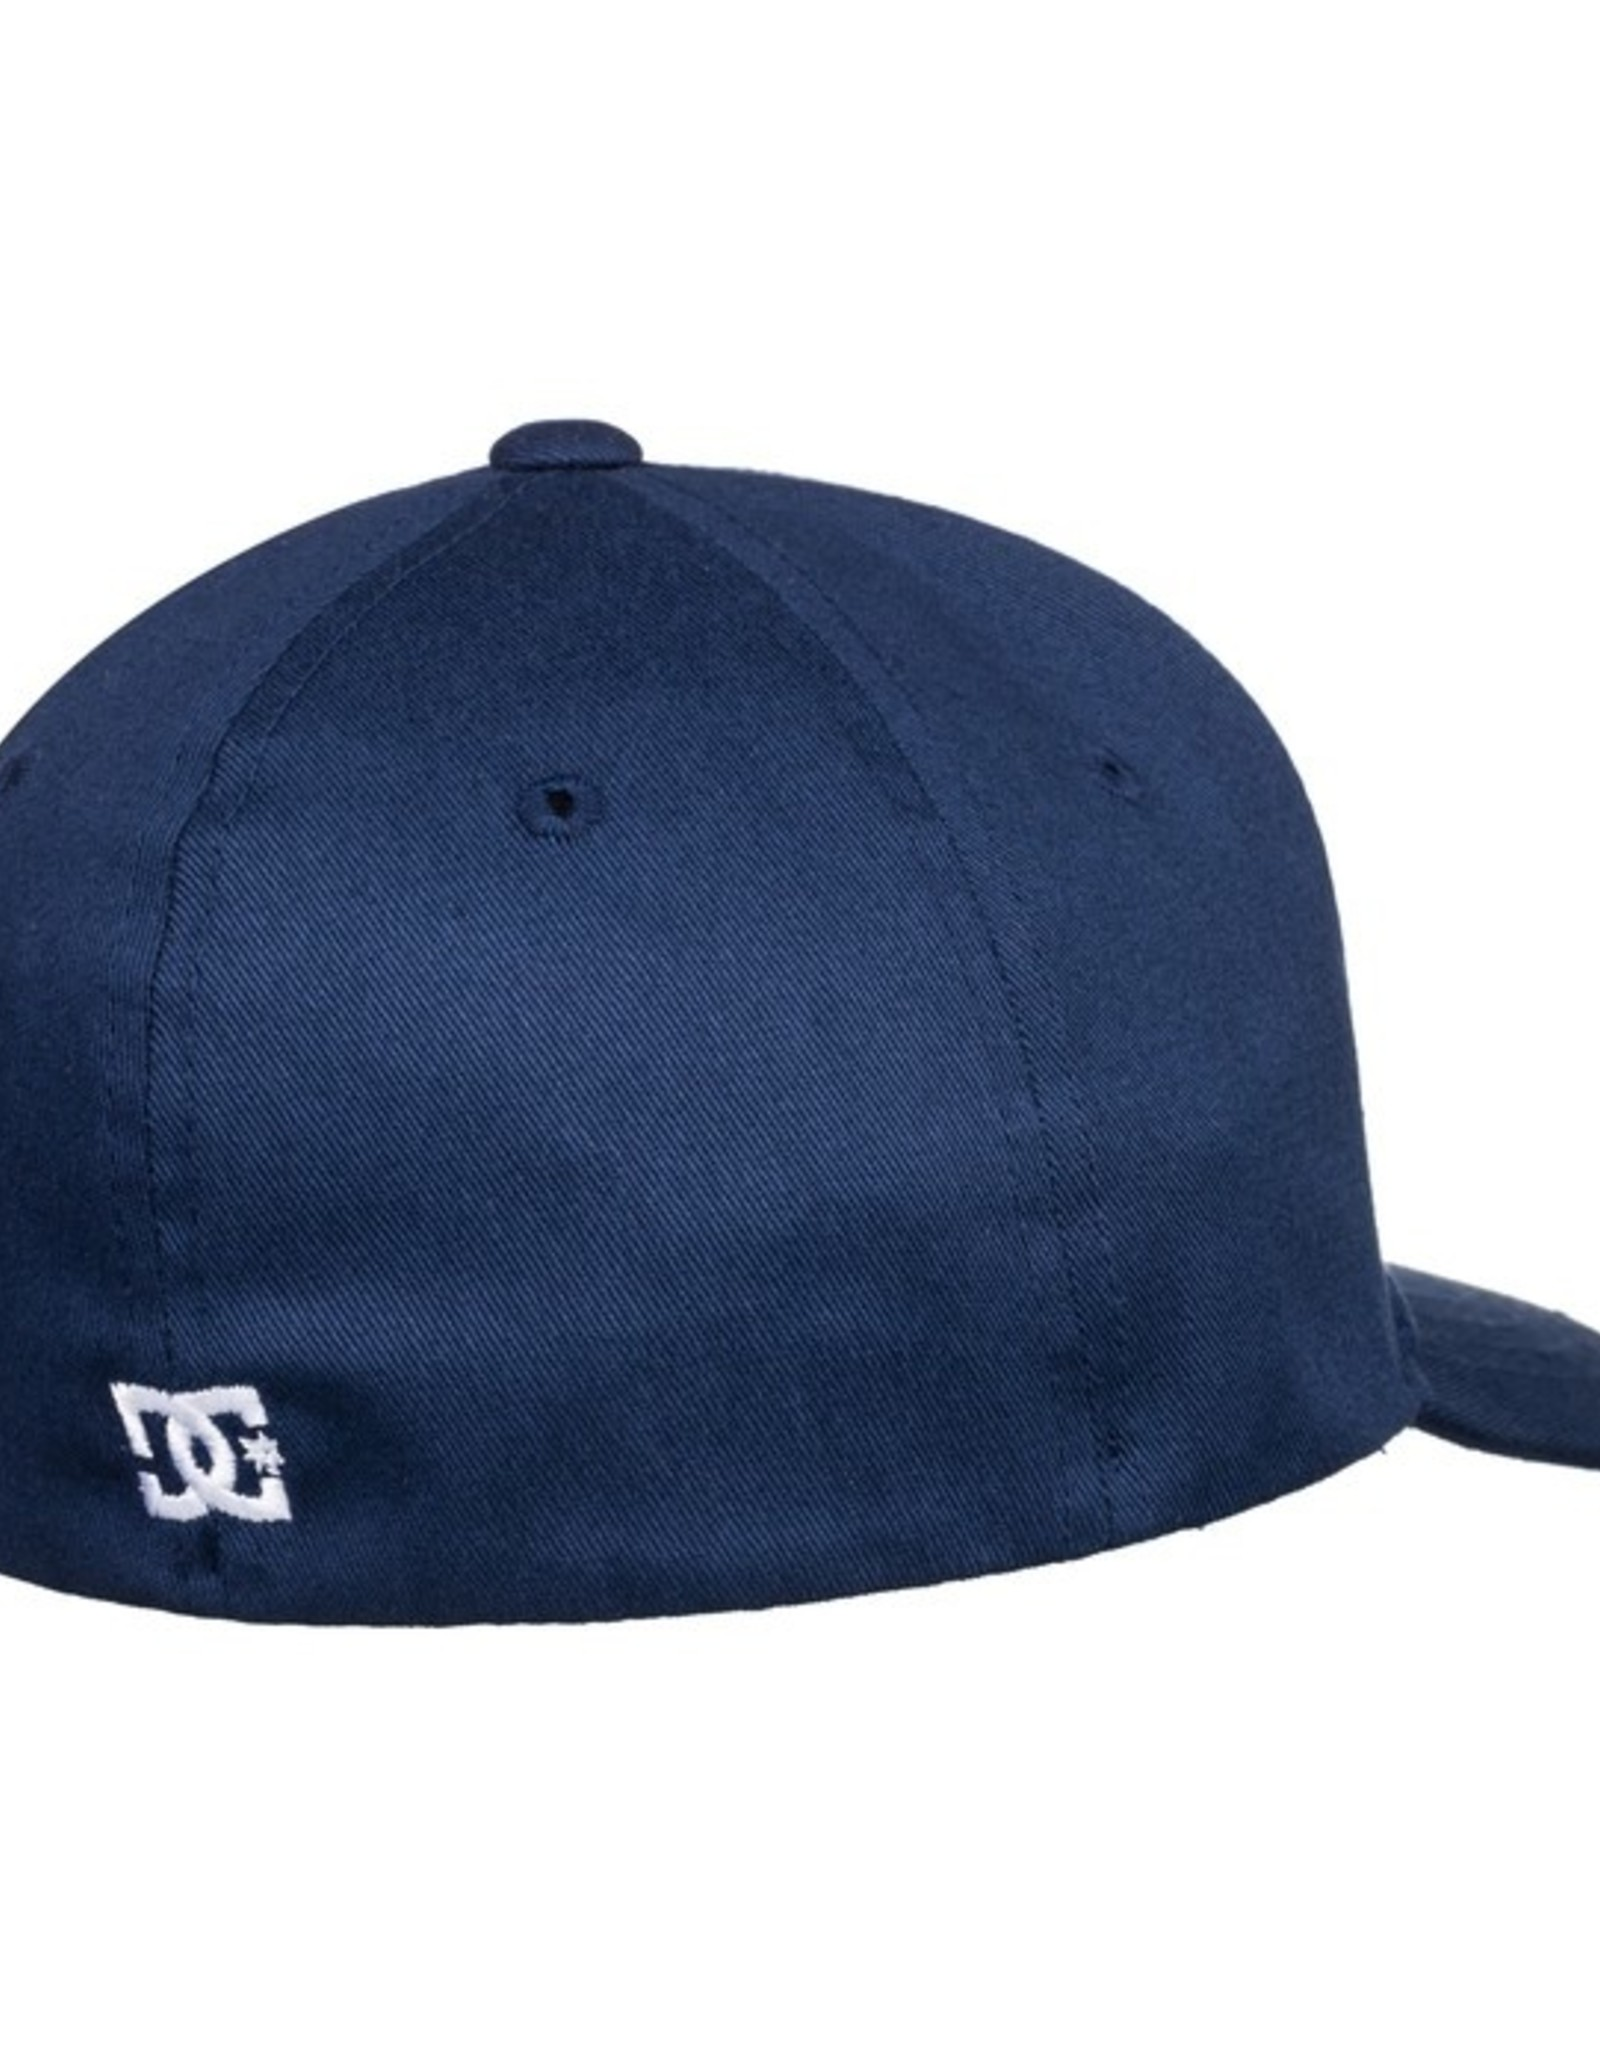 DC Cap Star Flexfit Hat 6+